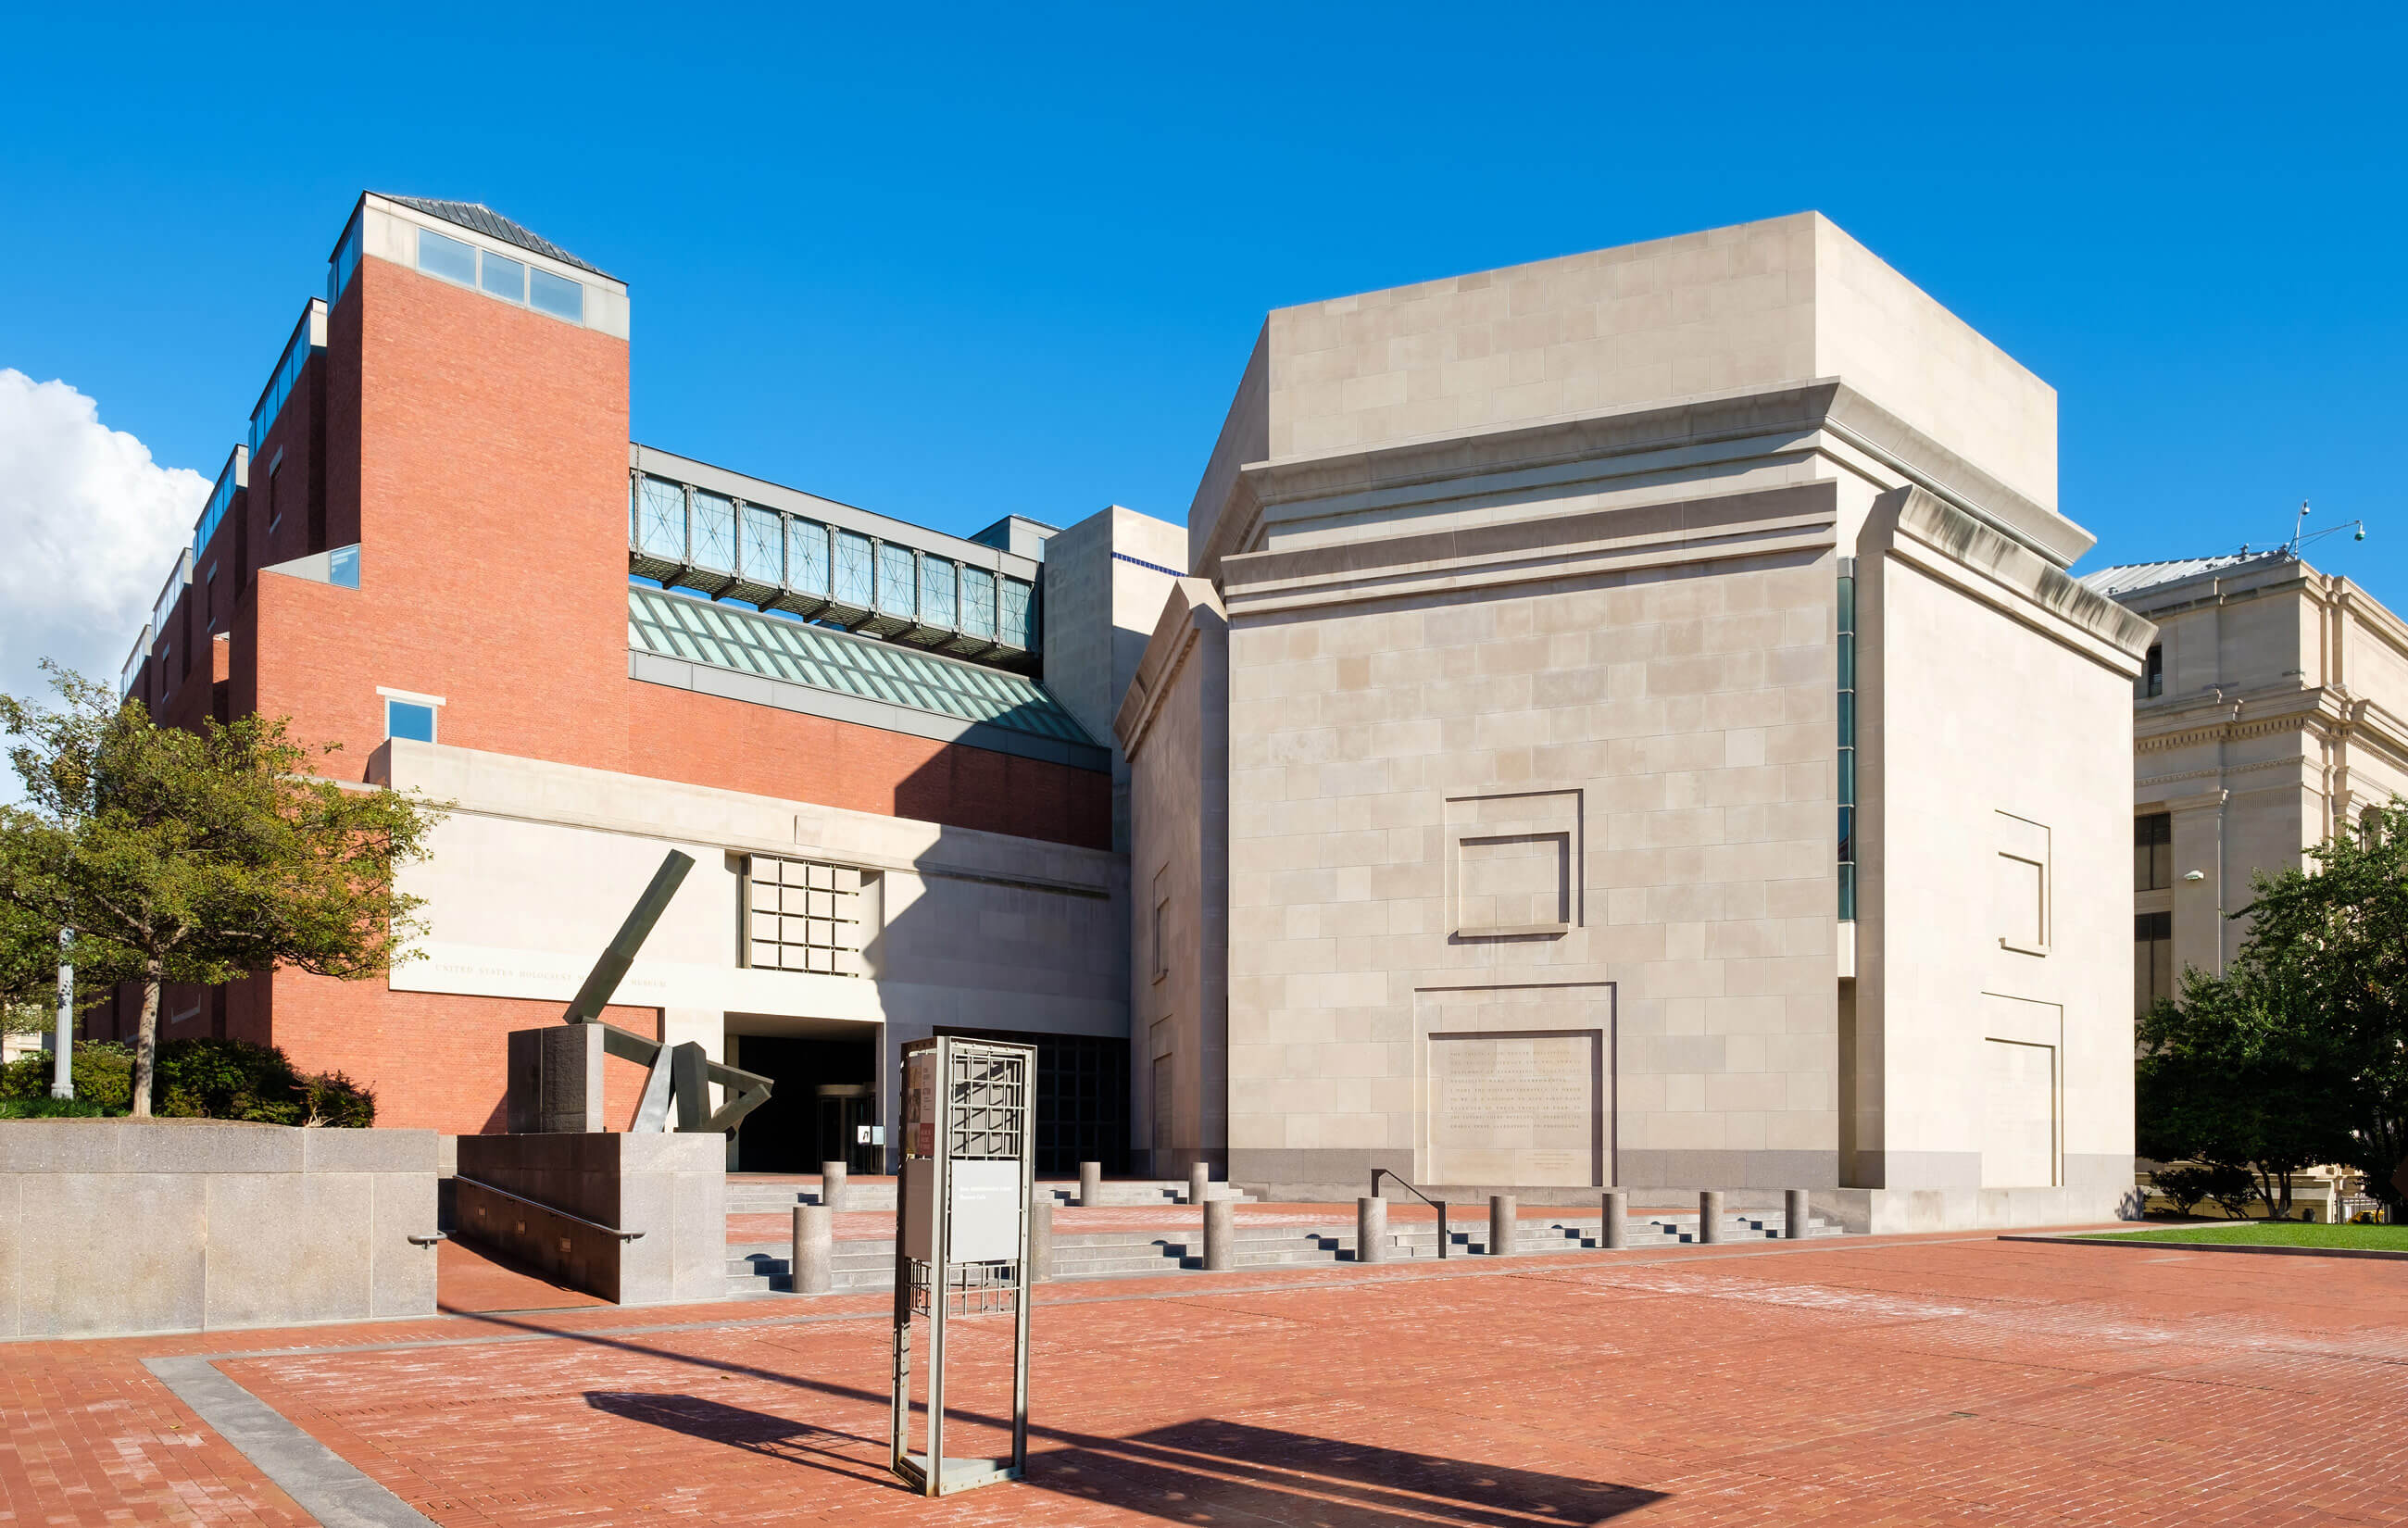 Hexagonal stone extension of the United States Holocaust Memorial Museum on a brick plaza.